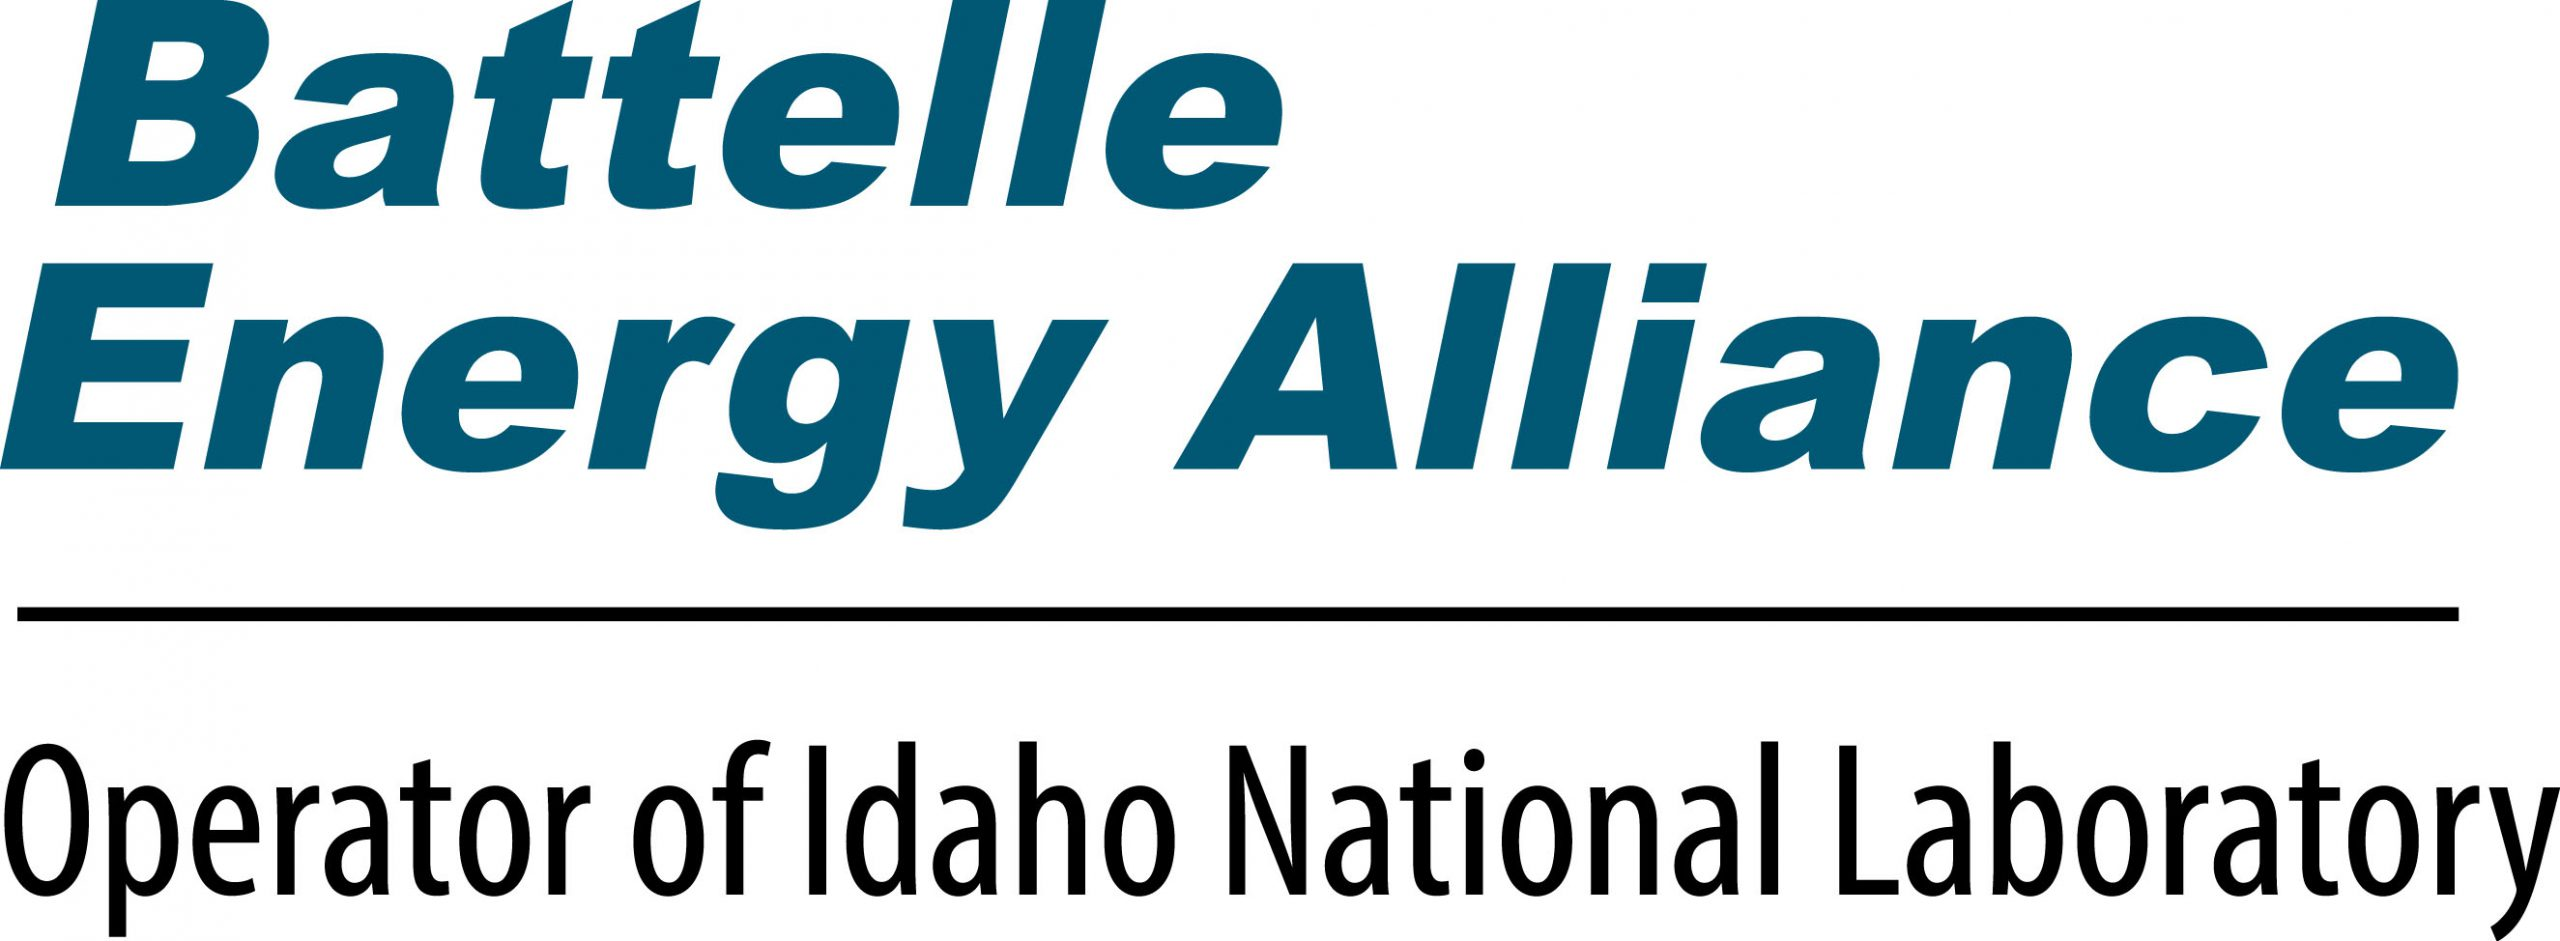 2019 INDEEDS Partner, Battelle Energy Alliance